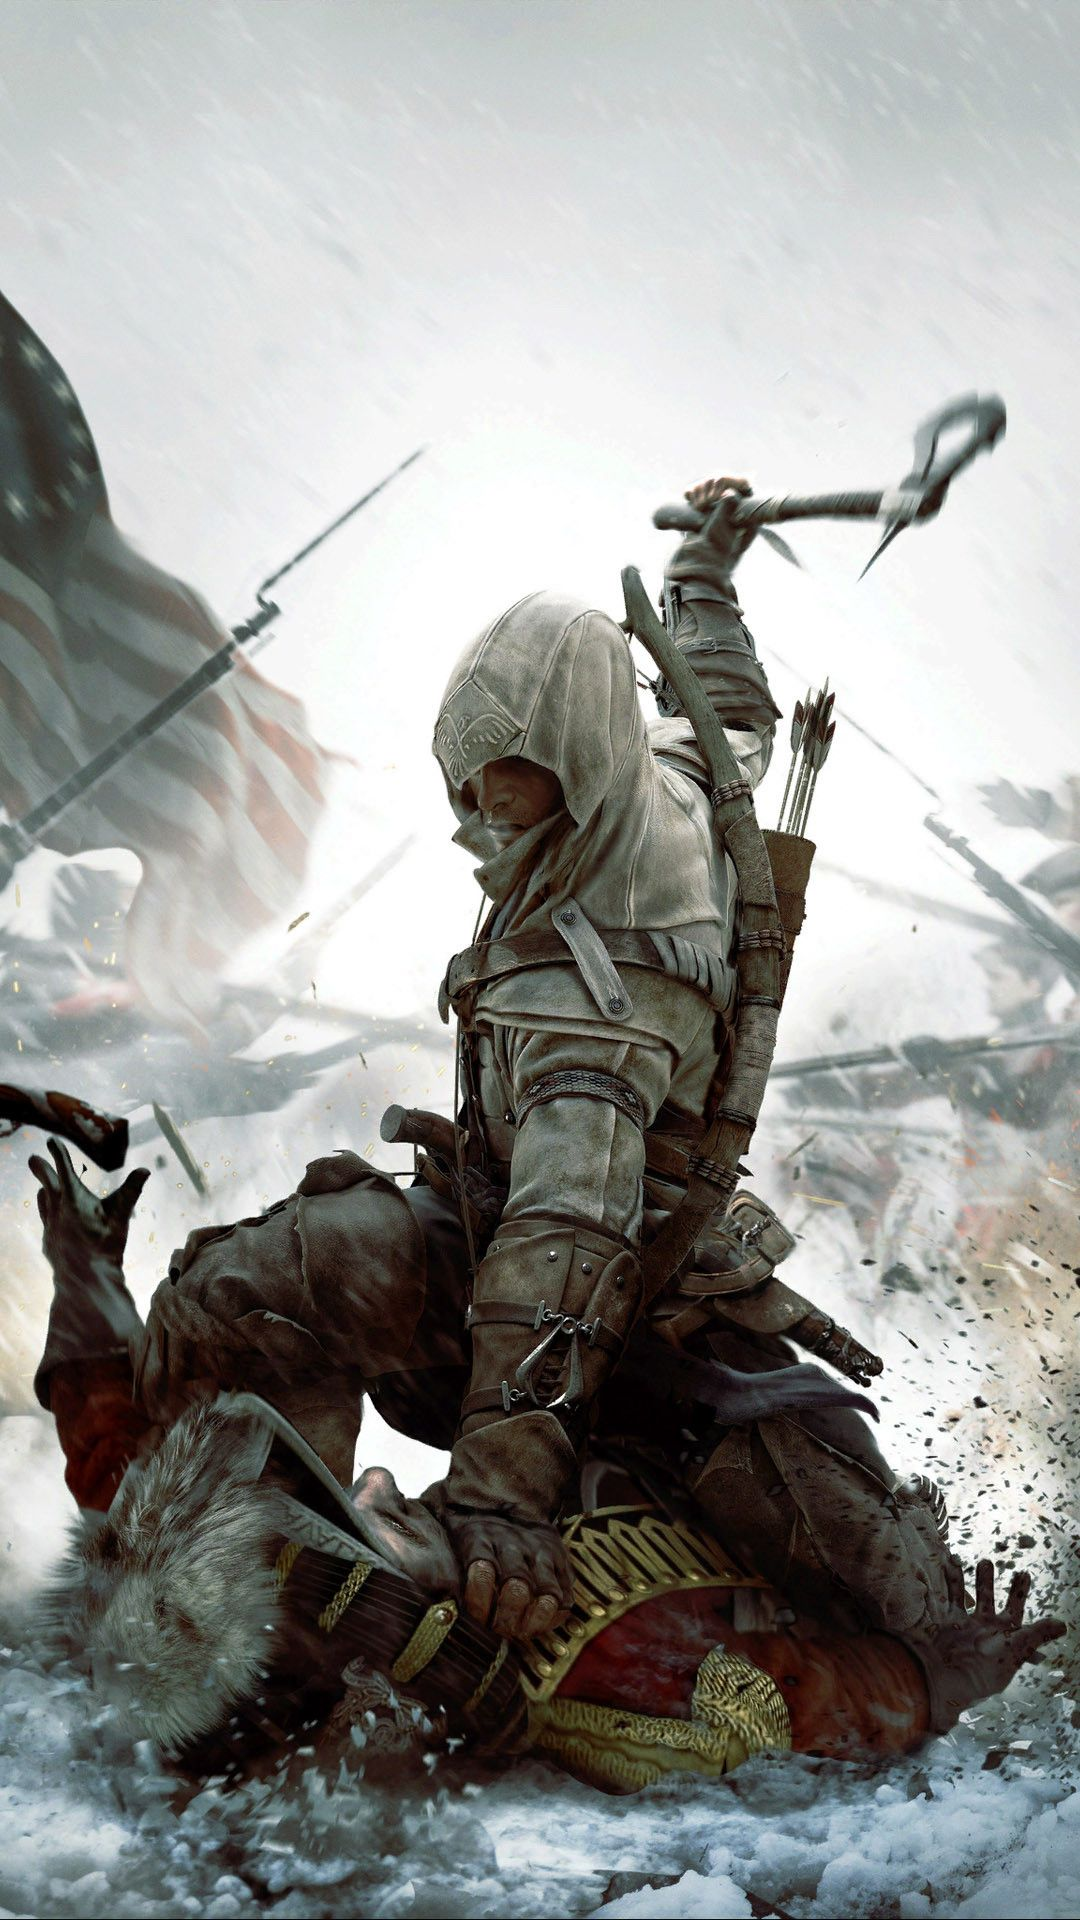 Connor In Assassins Creed 3 4k 4k Hd Wallpapers Assassins Creed 3 Assassin S Creed Wallpaper Assassin S Creed